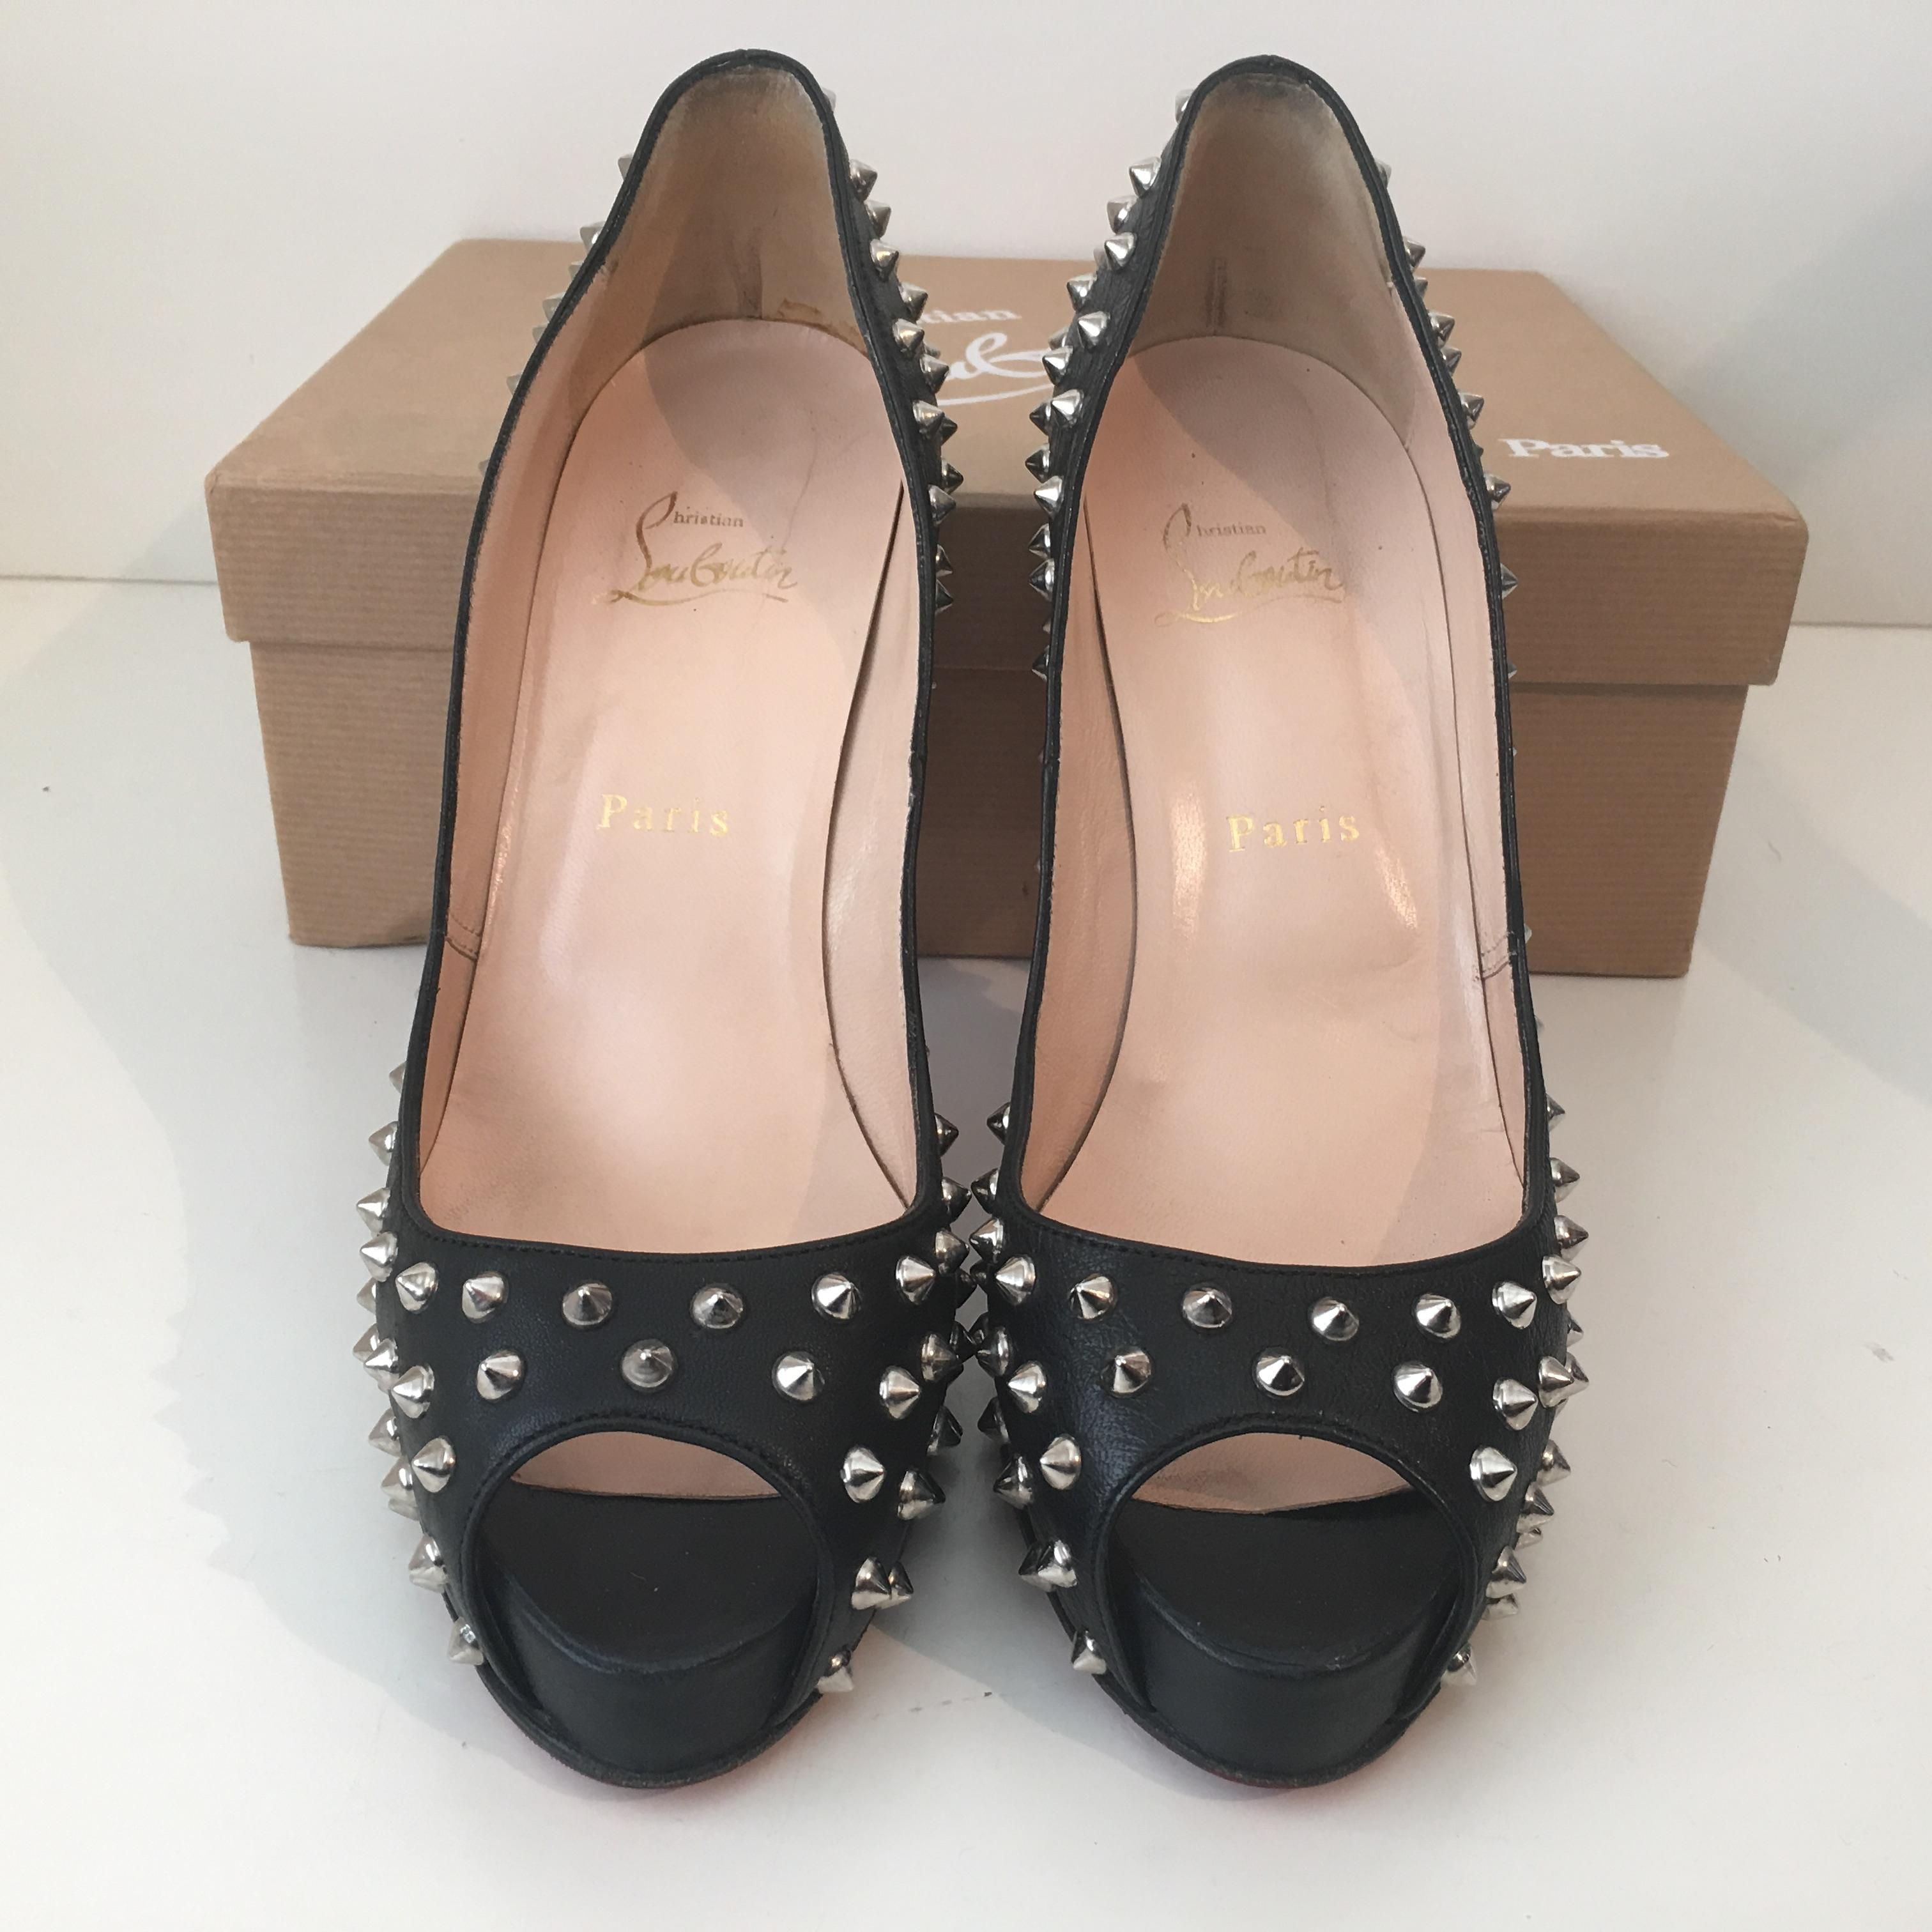 79b247e9857 Christian Louboutin Black Very Prive Spiked Leather 38.5 Pumps Size ...